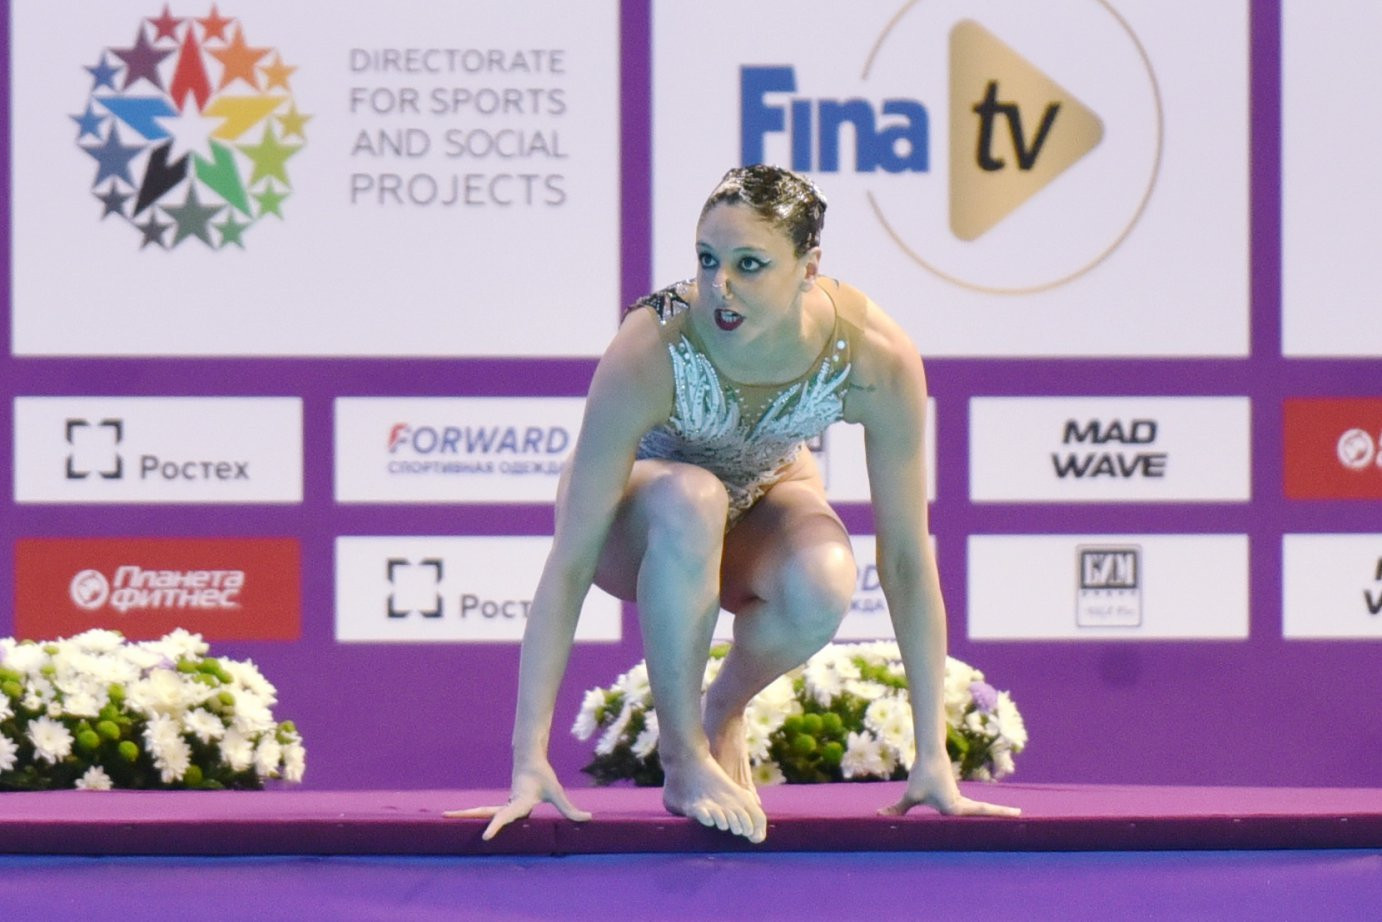 Italy's Linda Cerruti won the solo free event at the FINA Artistic Swimming World Series in Kazan ©FINA